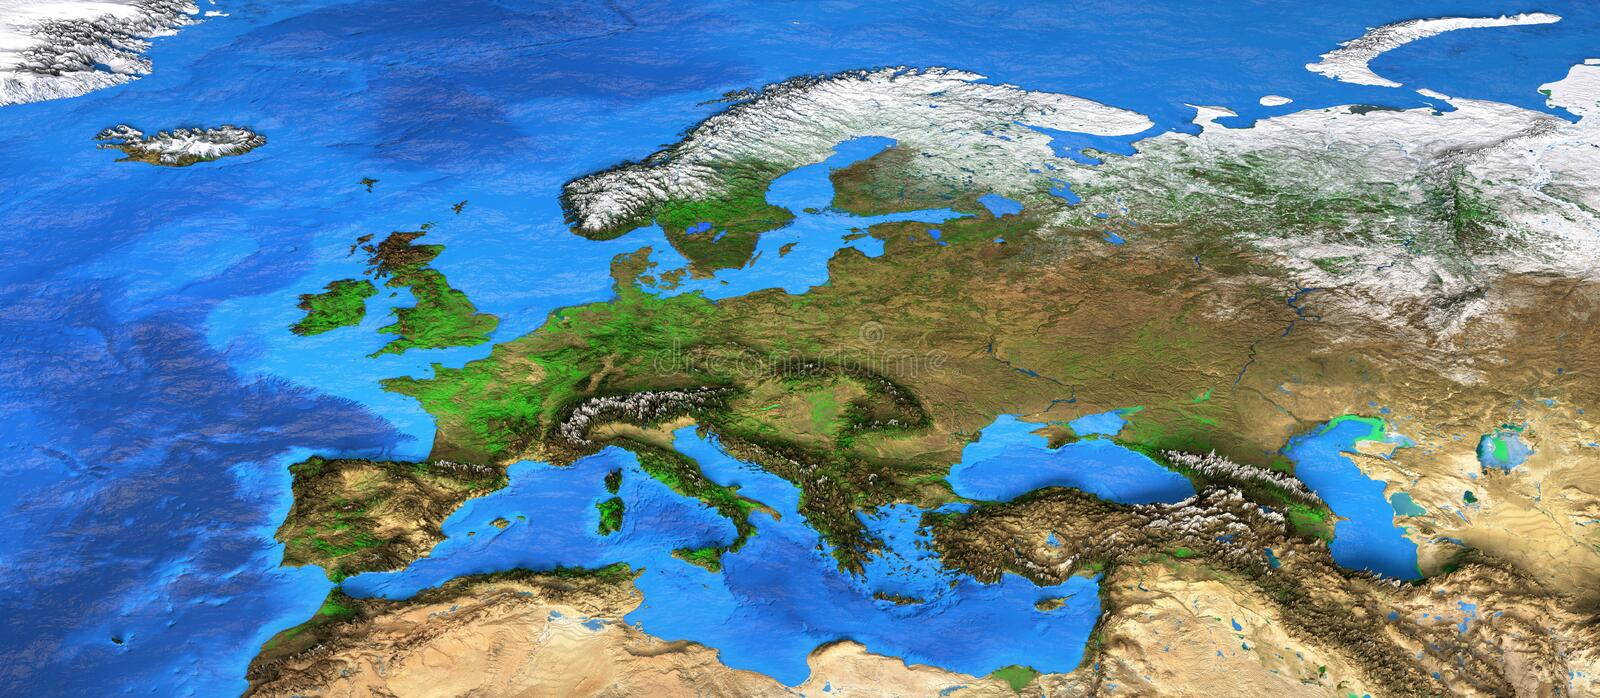 Download High Resolution World Map Focused On Europe Stock Image   Image Of  Angle, European